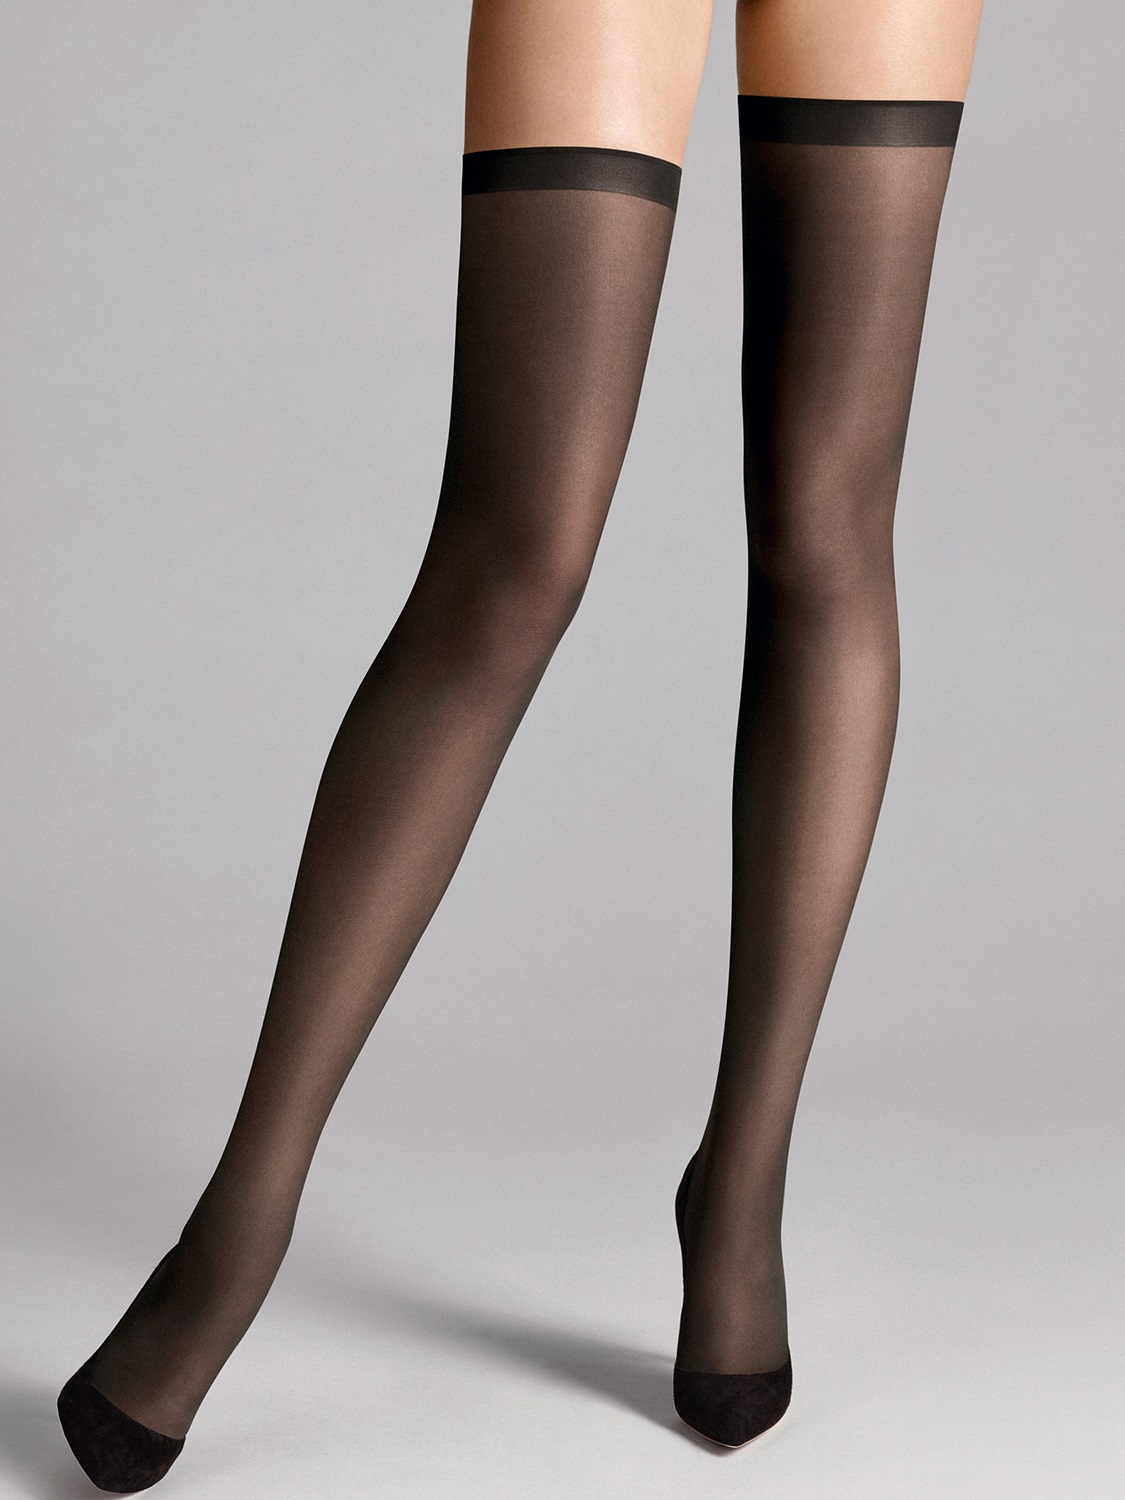 a002b4090c1ee Wolford Stay-up Fatal 15 seamless, halterlose Strümpfe | Ceres Webshop